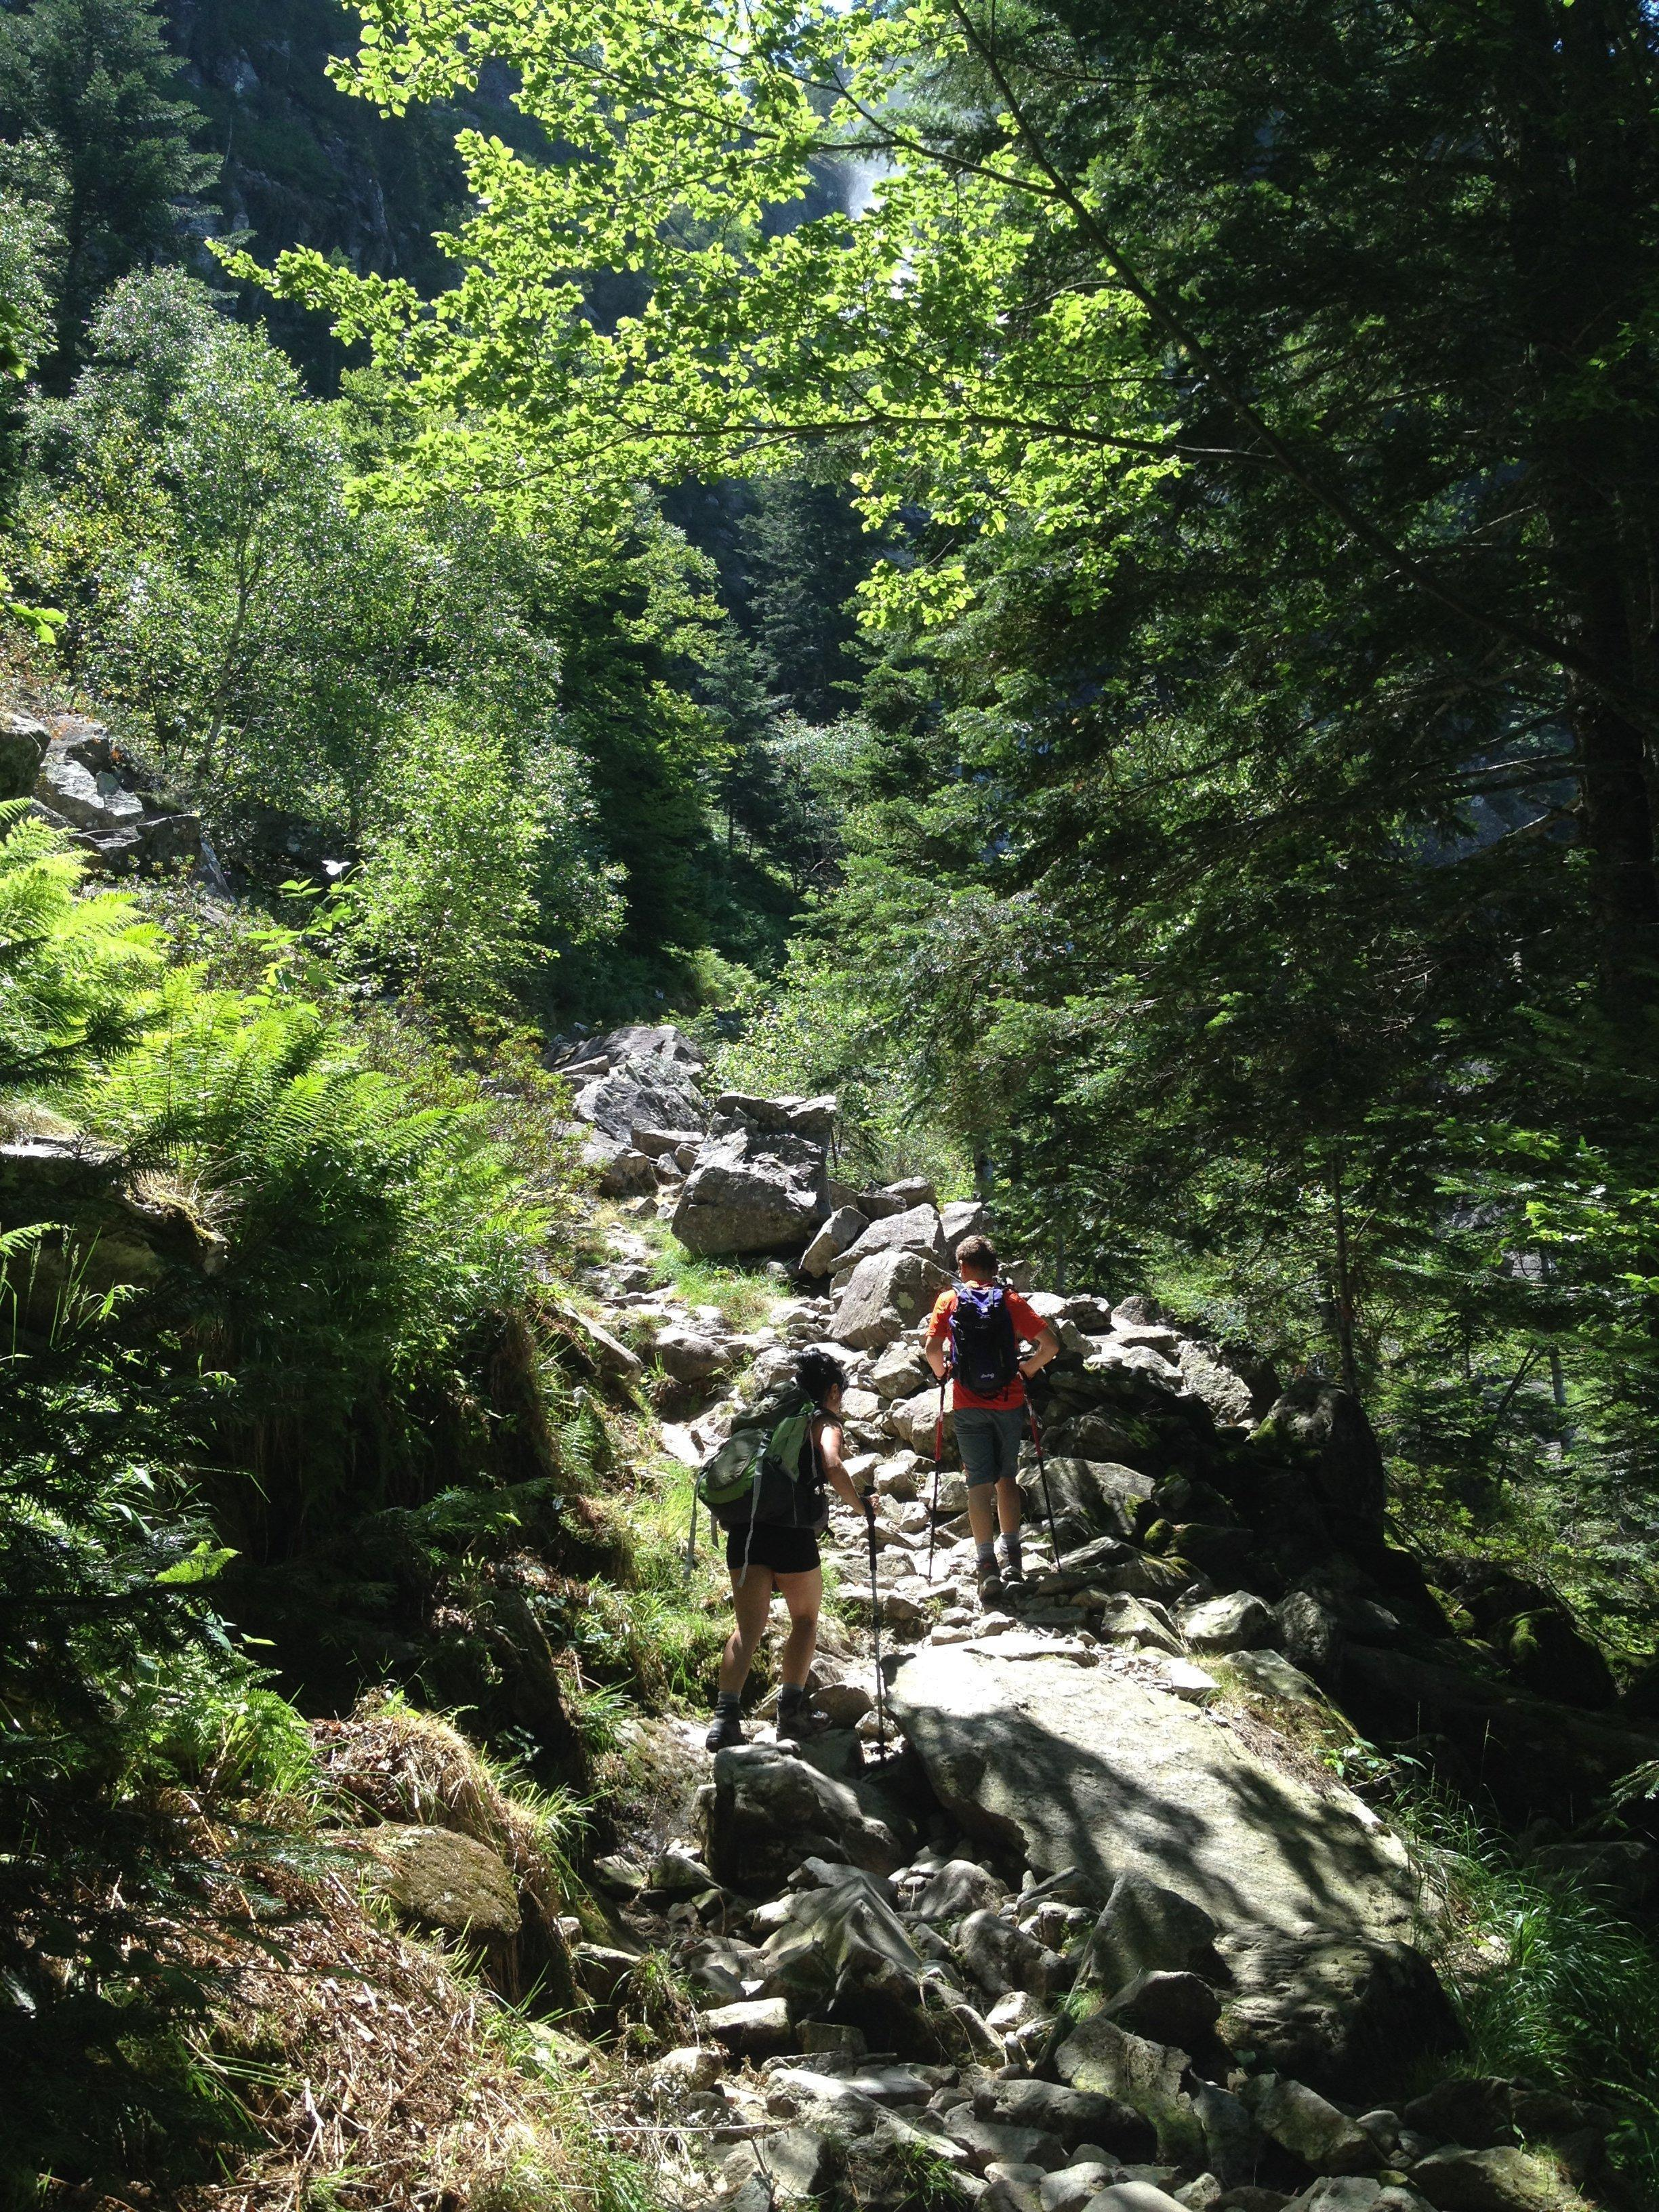 The hike up to the Cascade d'Ars is not always a simple trail